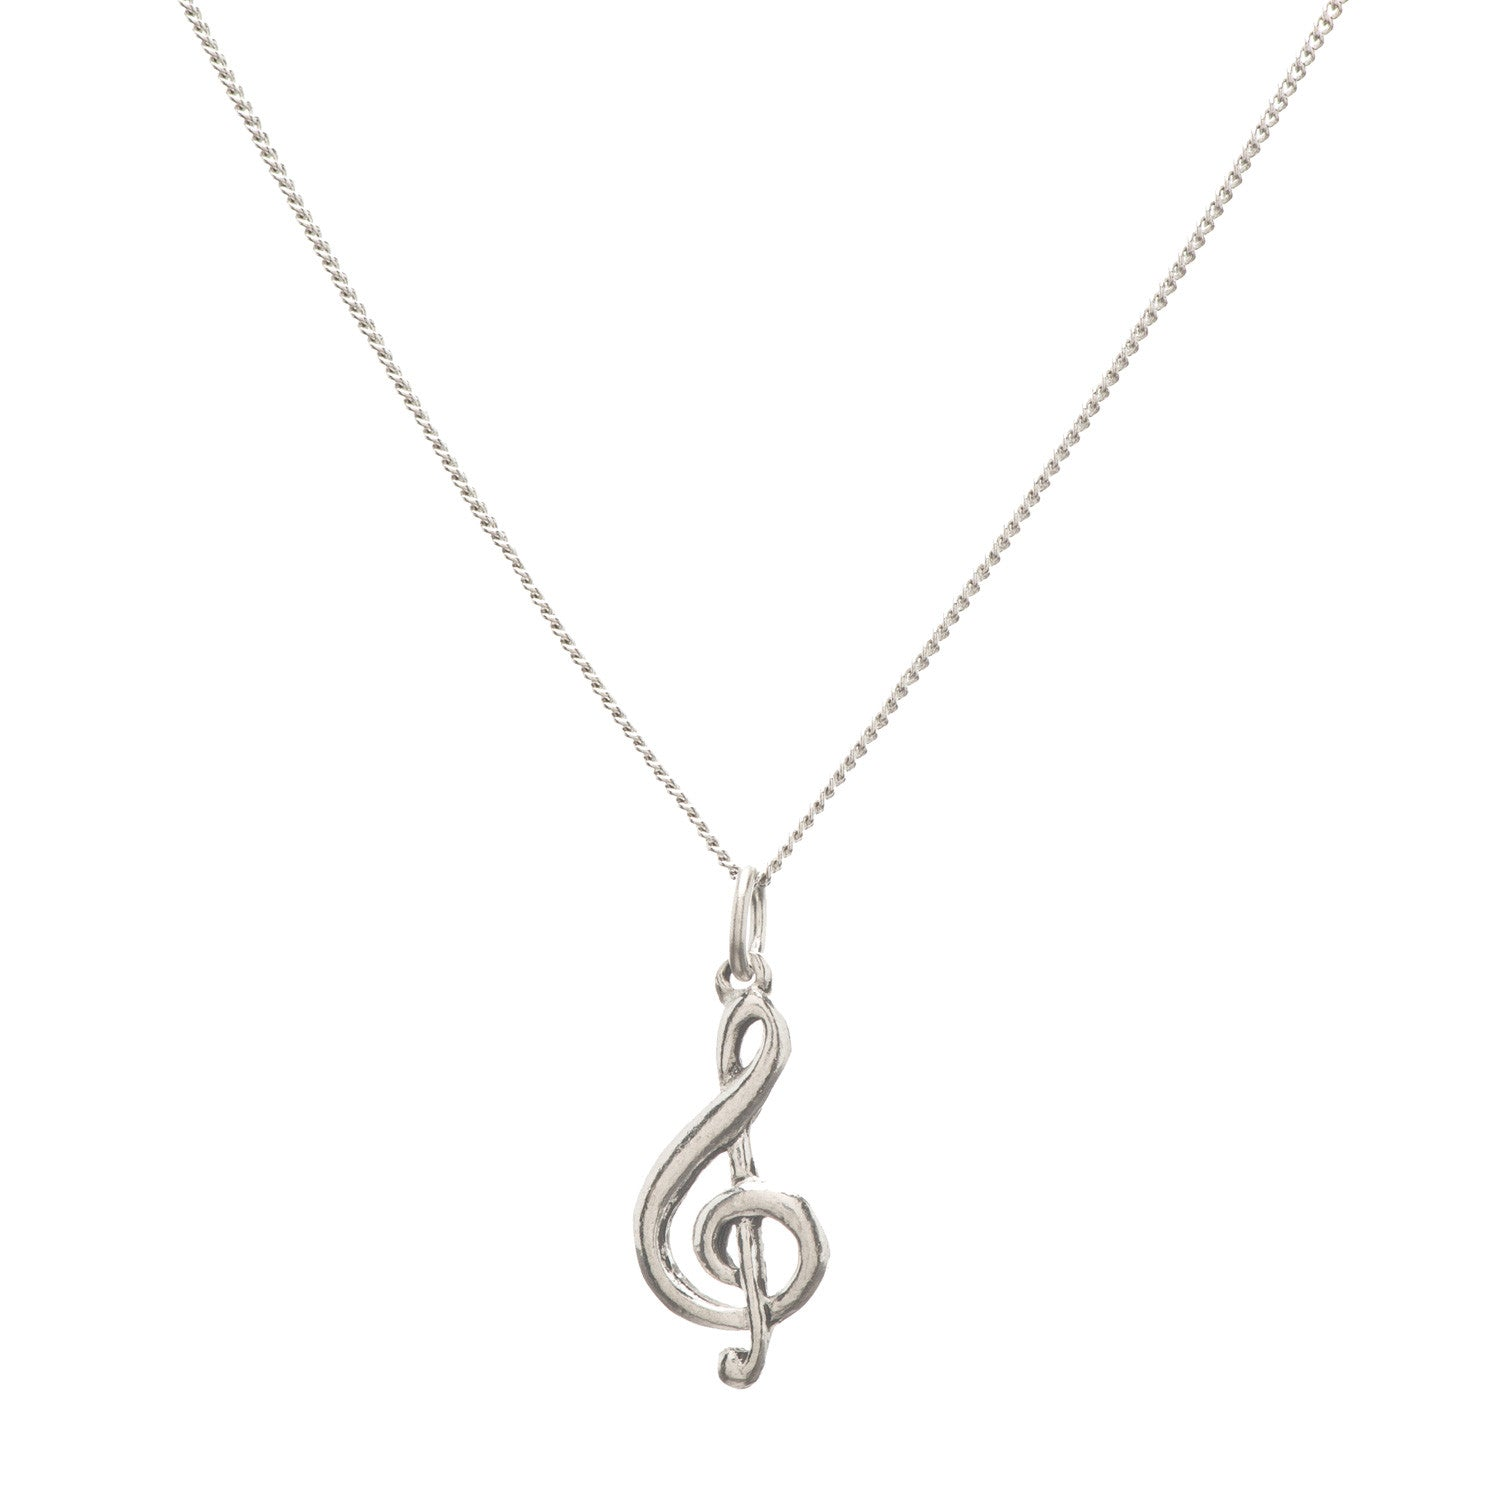 drop model claud necklace music rosegold pendant products clef f young l